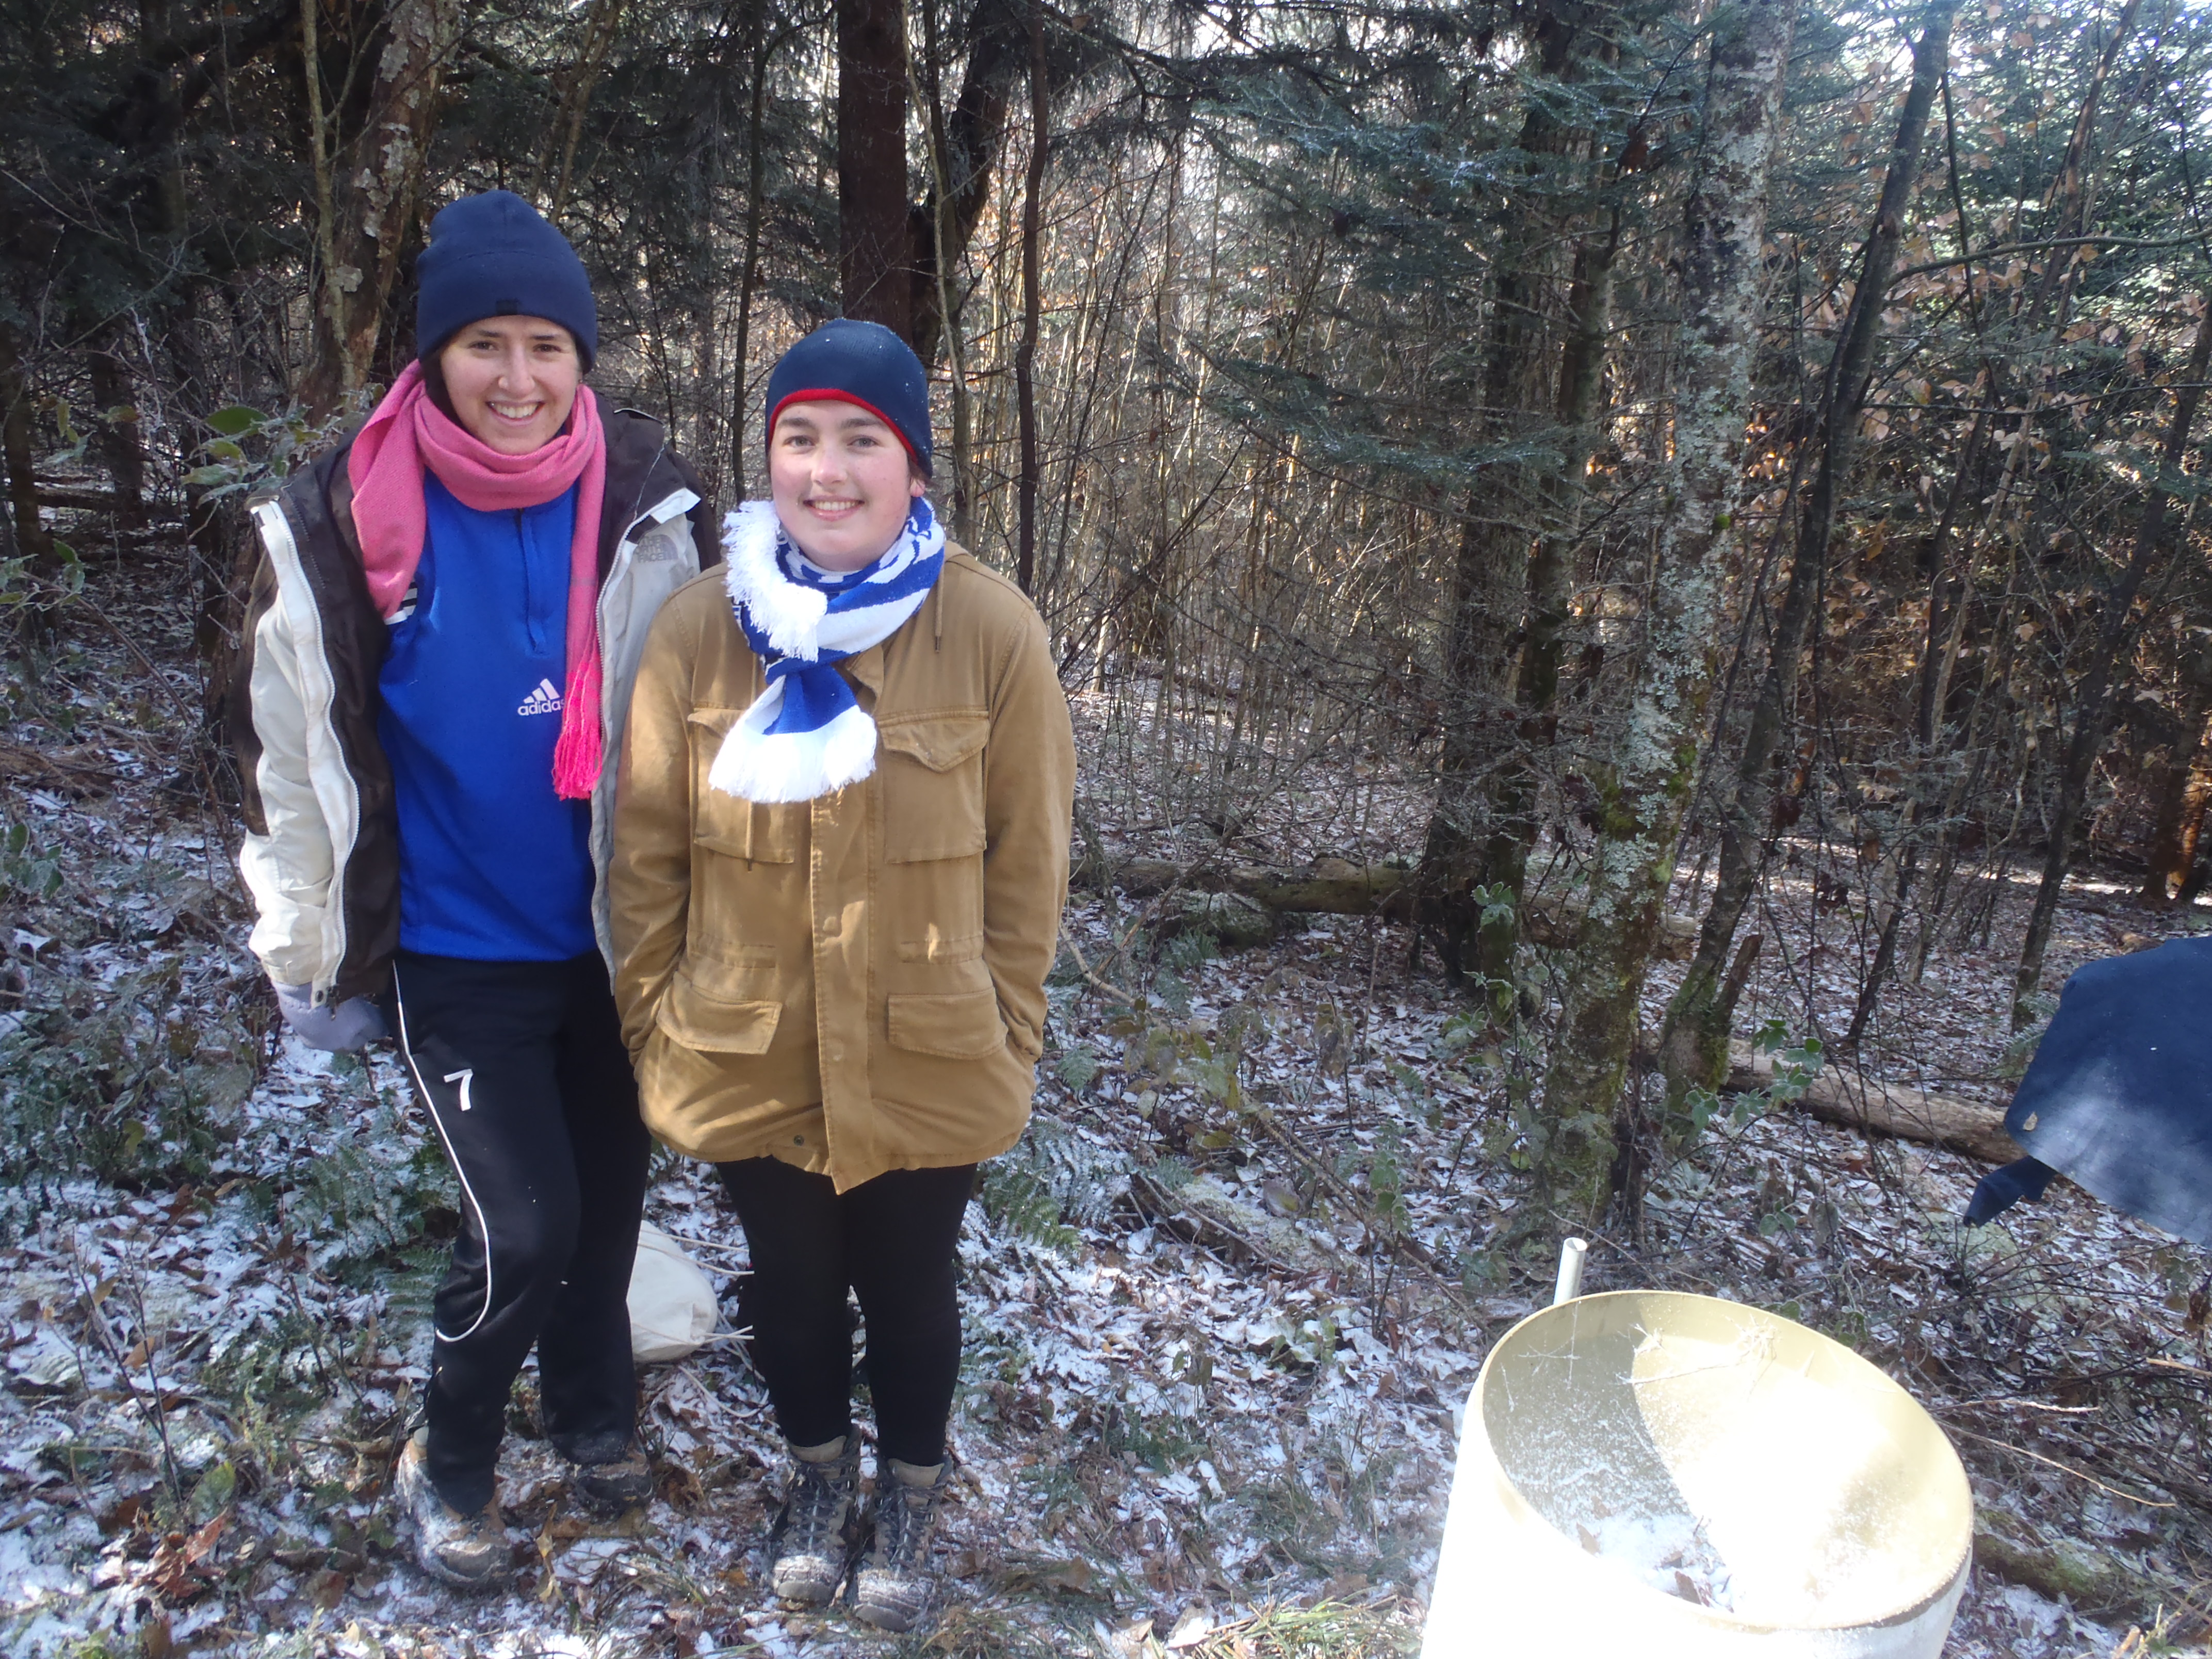 Mountain Raingers Carly Narotsky (left) and Meredith Avison (right) survive a freezing day in the field.